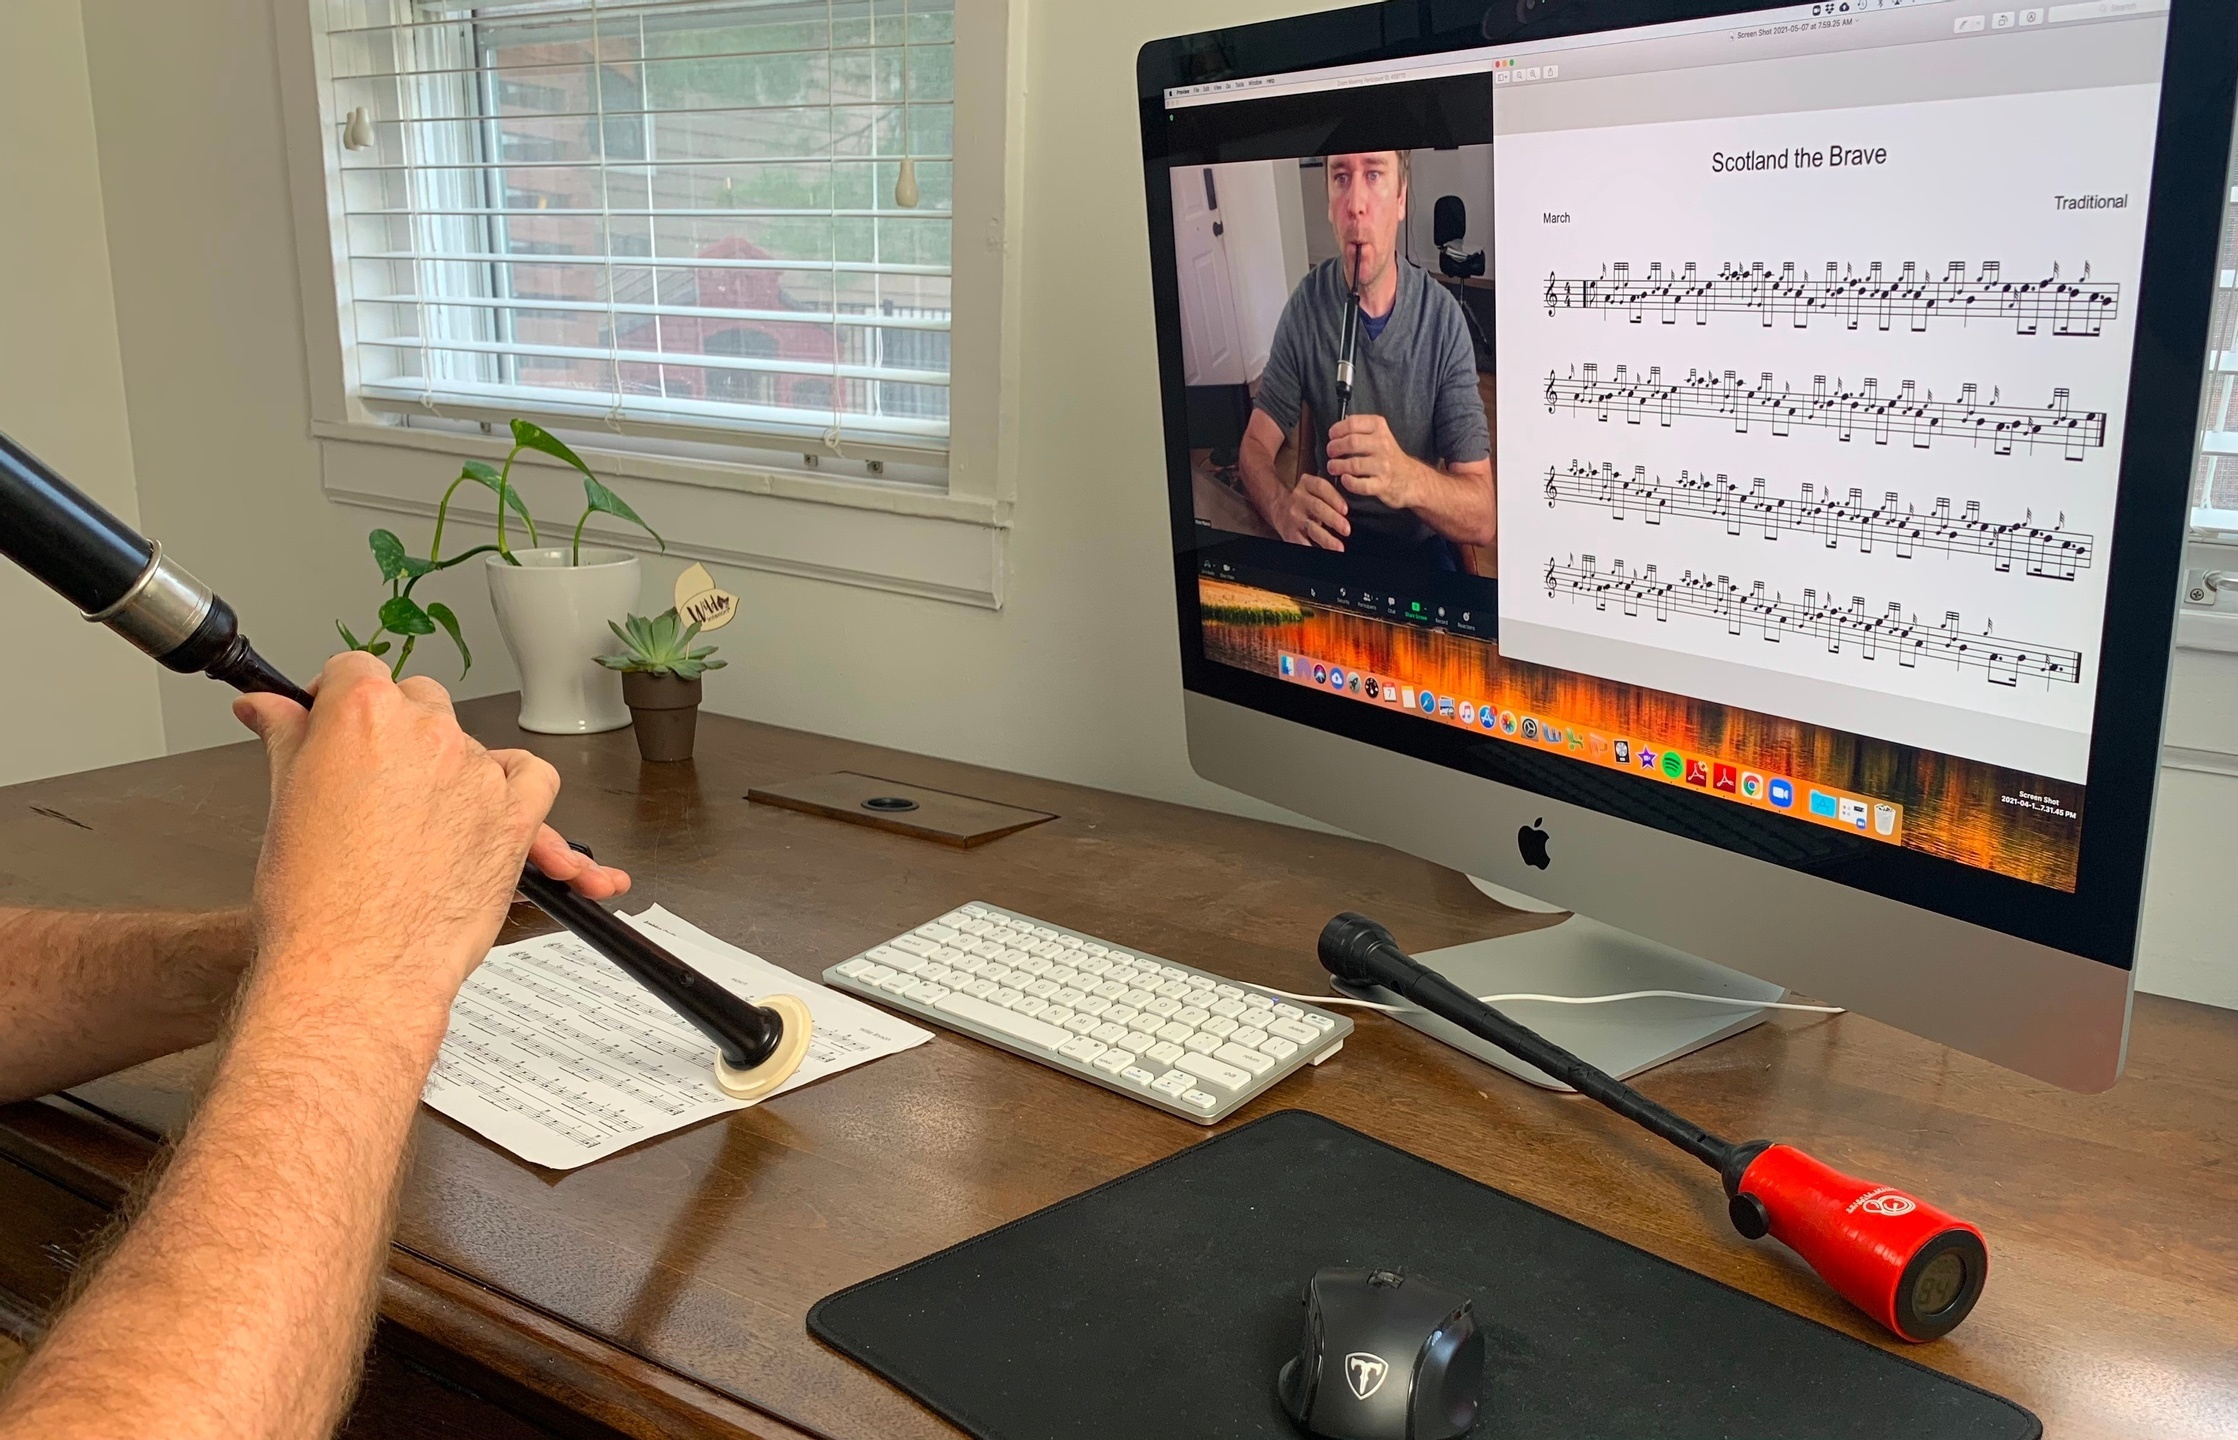 bagpipe lesson zoom online